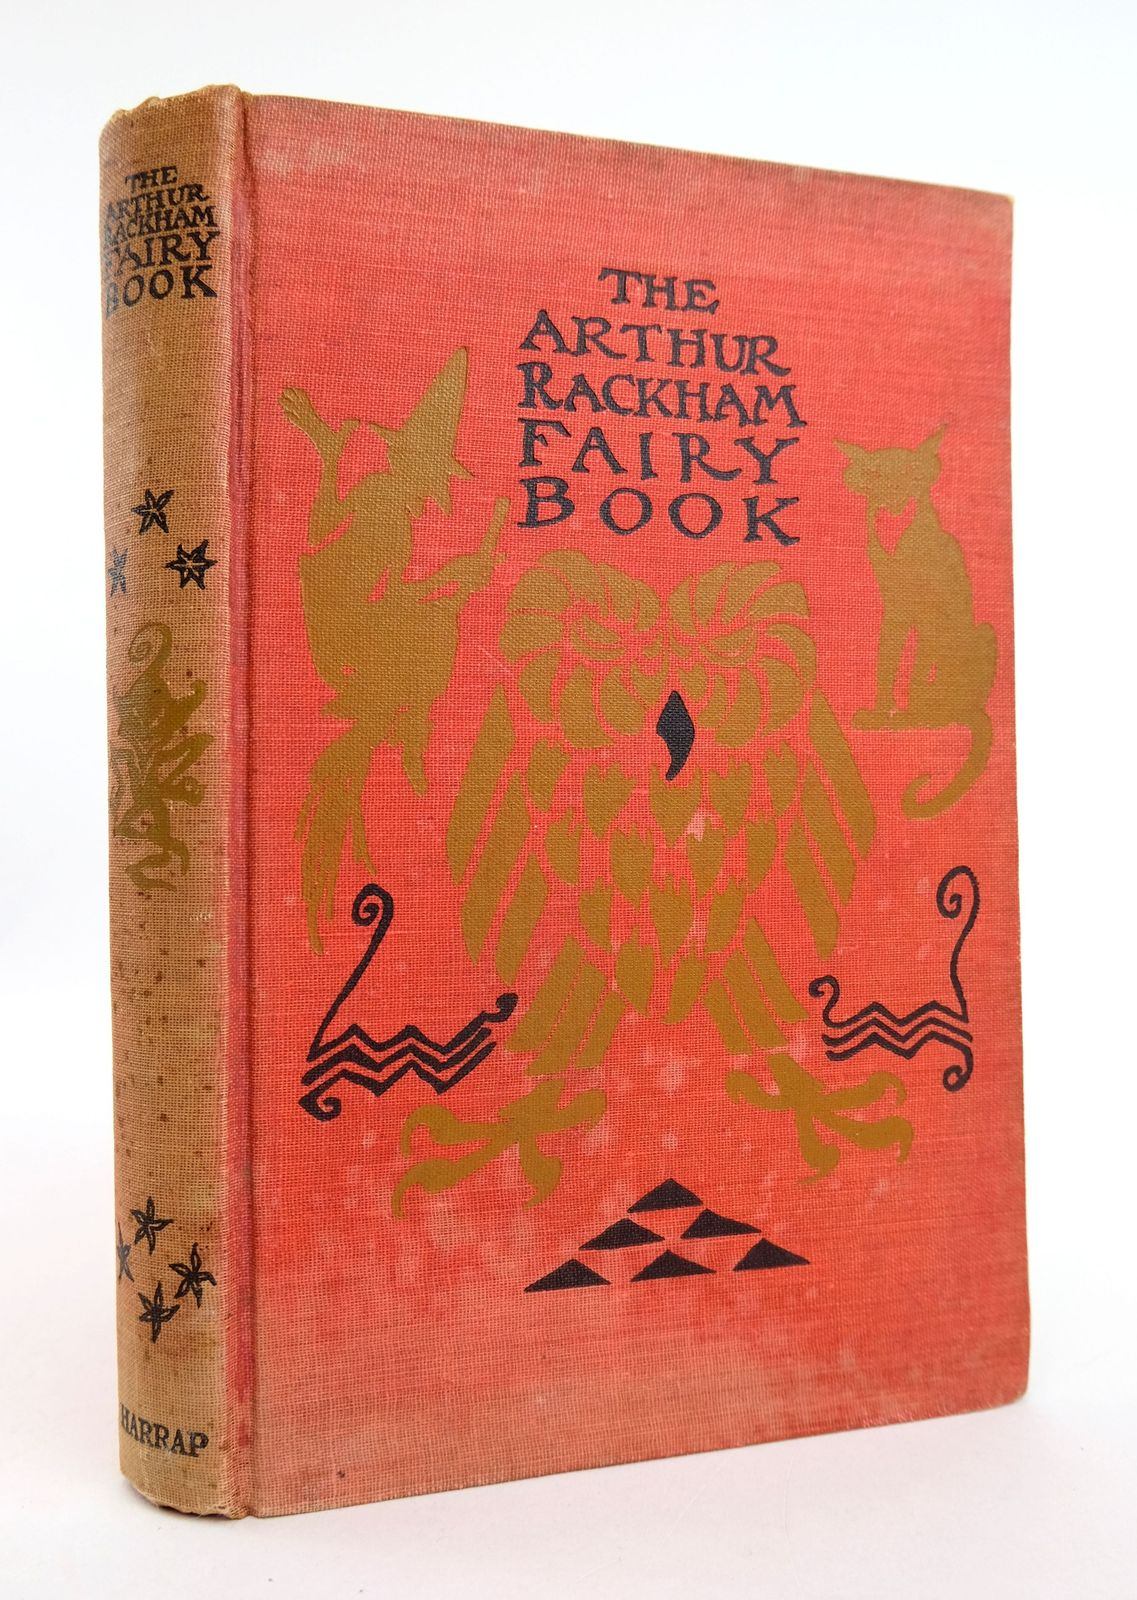 Photo of THE ARTHUR RACKHAM FAIRY BOOK illustrated by Rackham, Arthur published by George G. Harrap & Co. Ltd. (STOCK CODE: 1818912)  for sale by Stella & Rose's Books